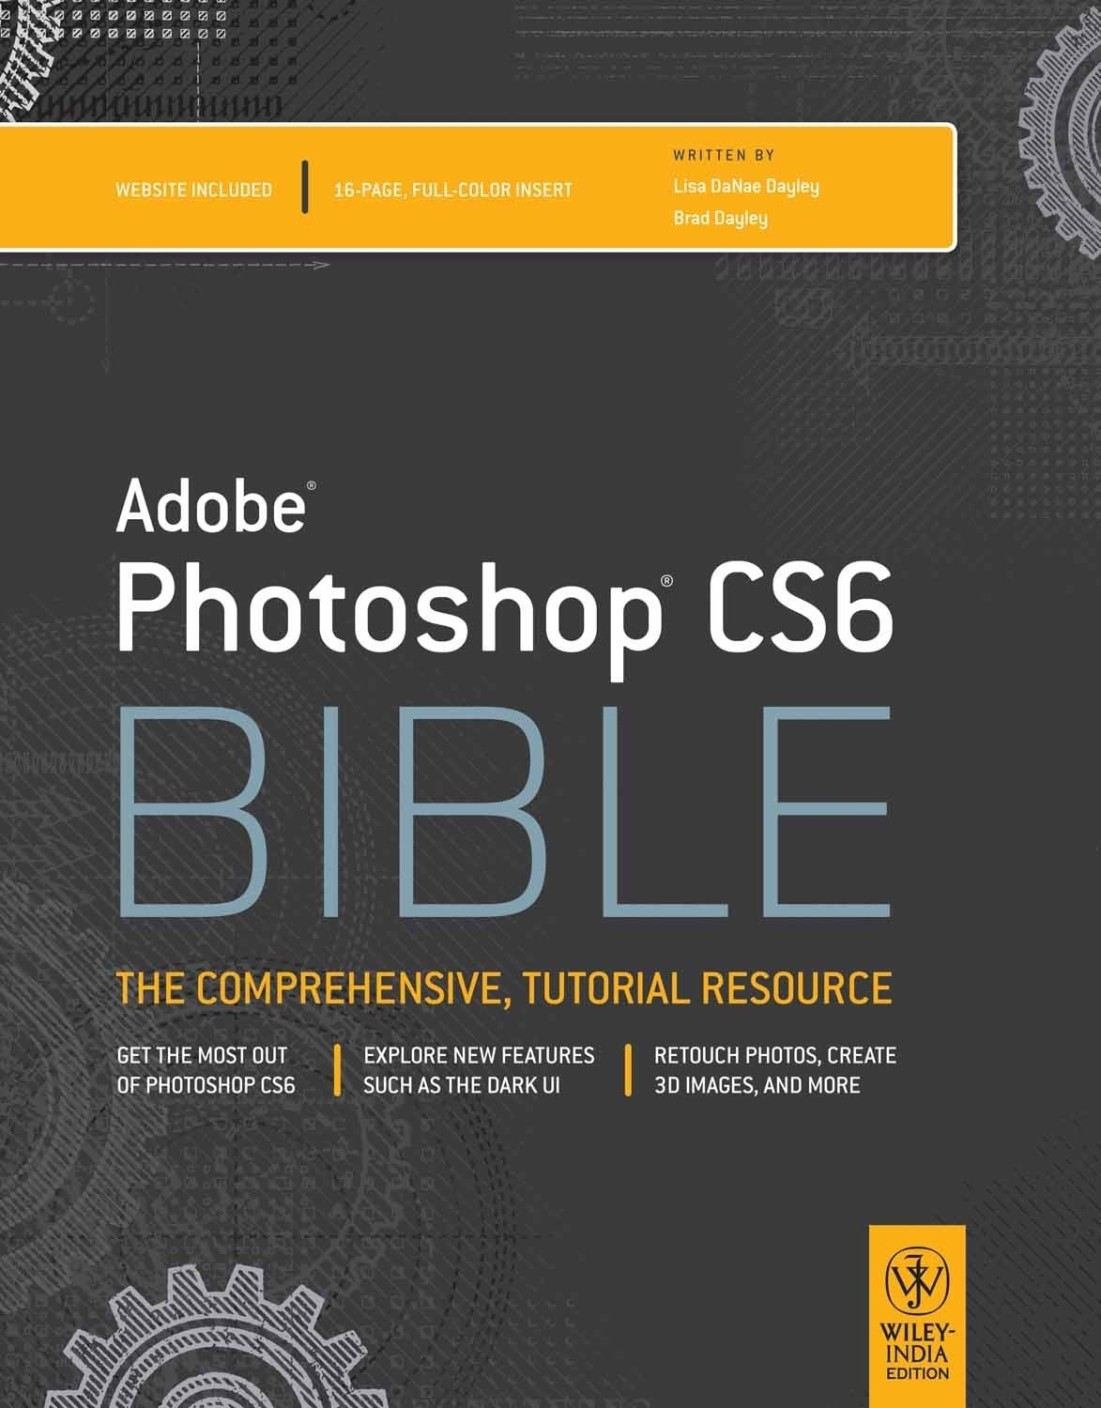 Which is best, Photoshop CC or CS6? - Quora